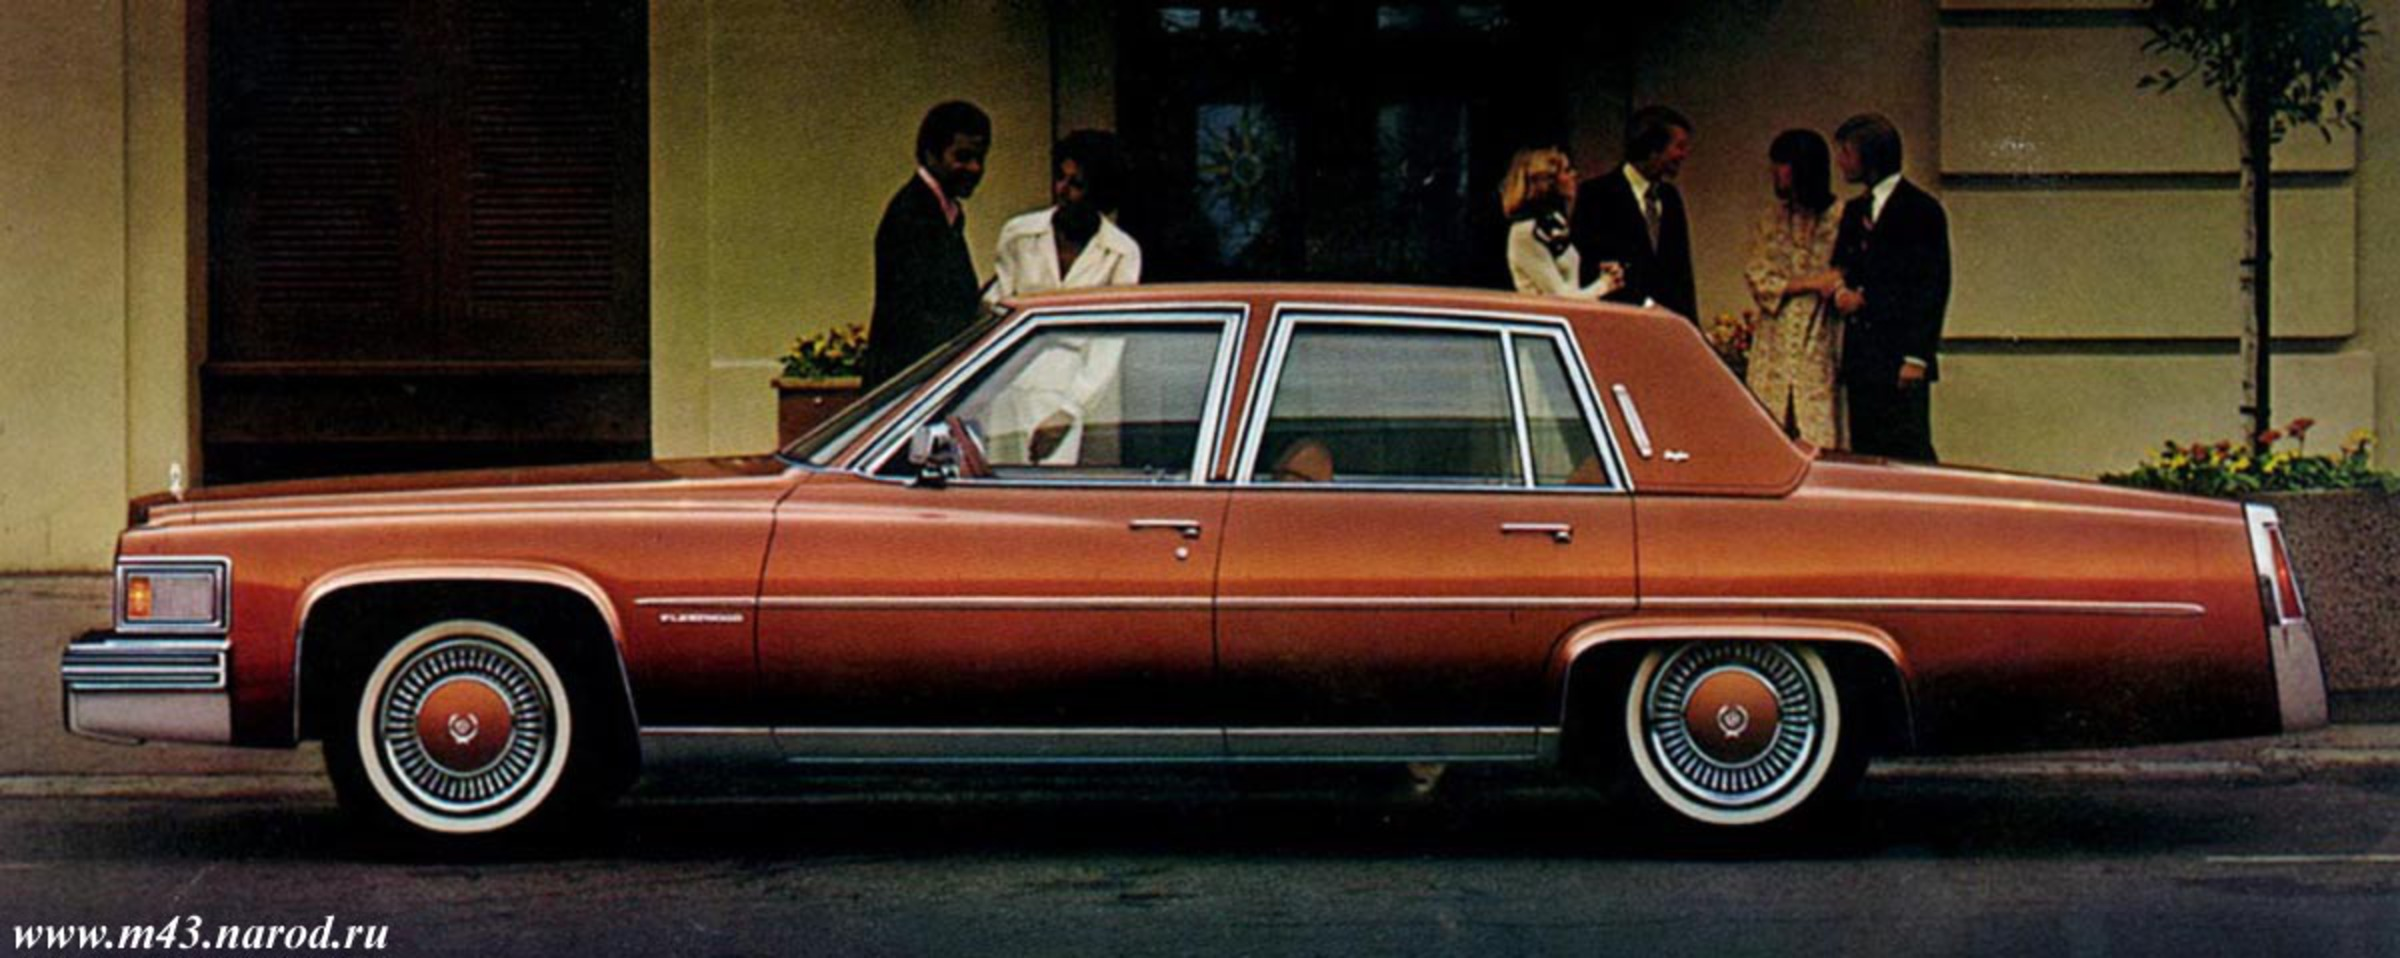 CC Outtake: 1977 Cadillac Fleetwood Brougham Time Warp